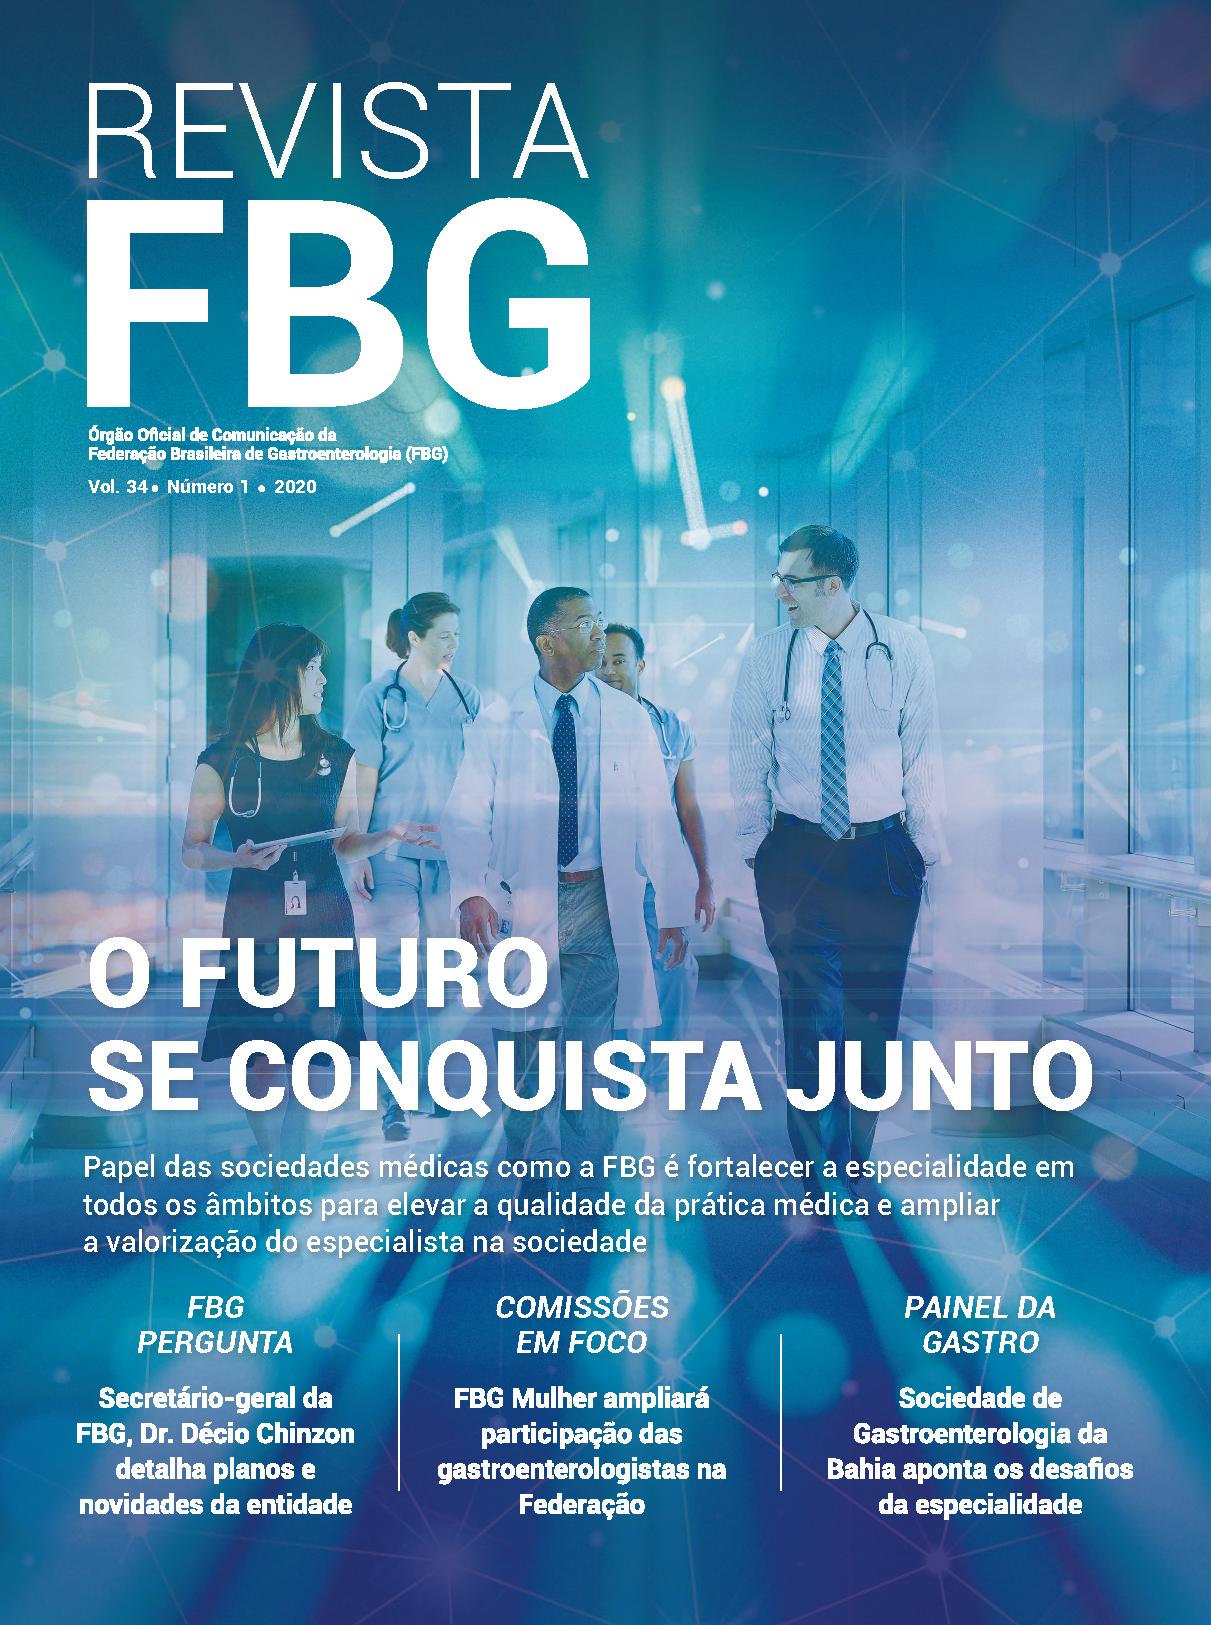 REVISTA FBG Vol. 34 - Nº 1 - 2020